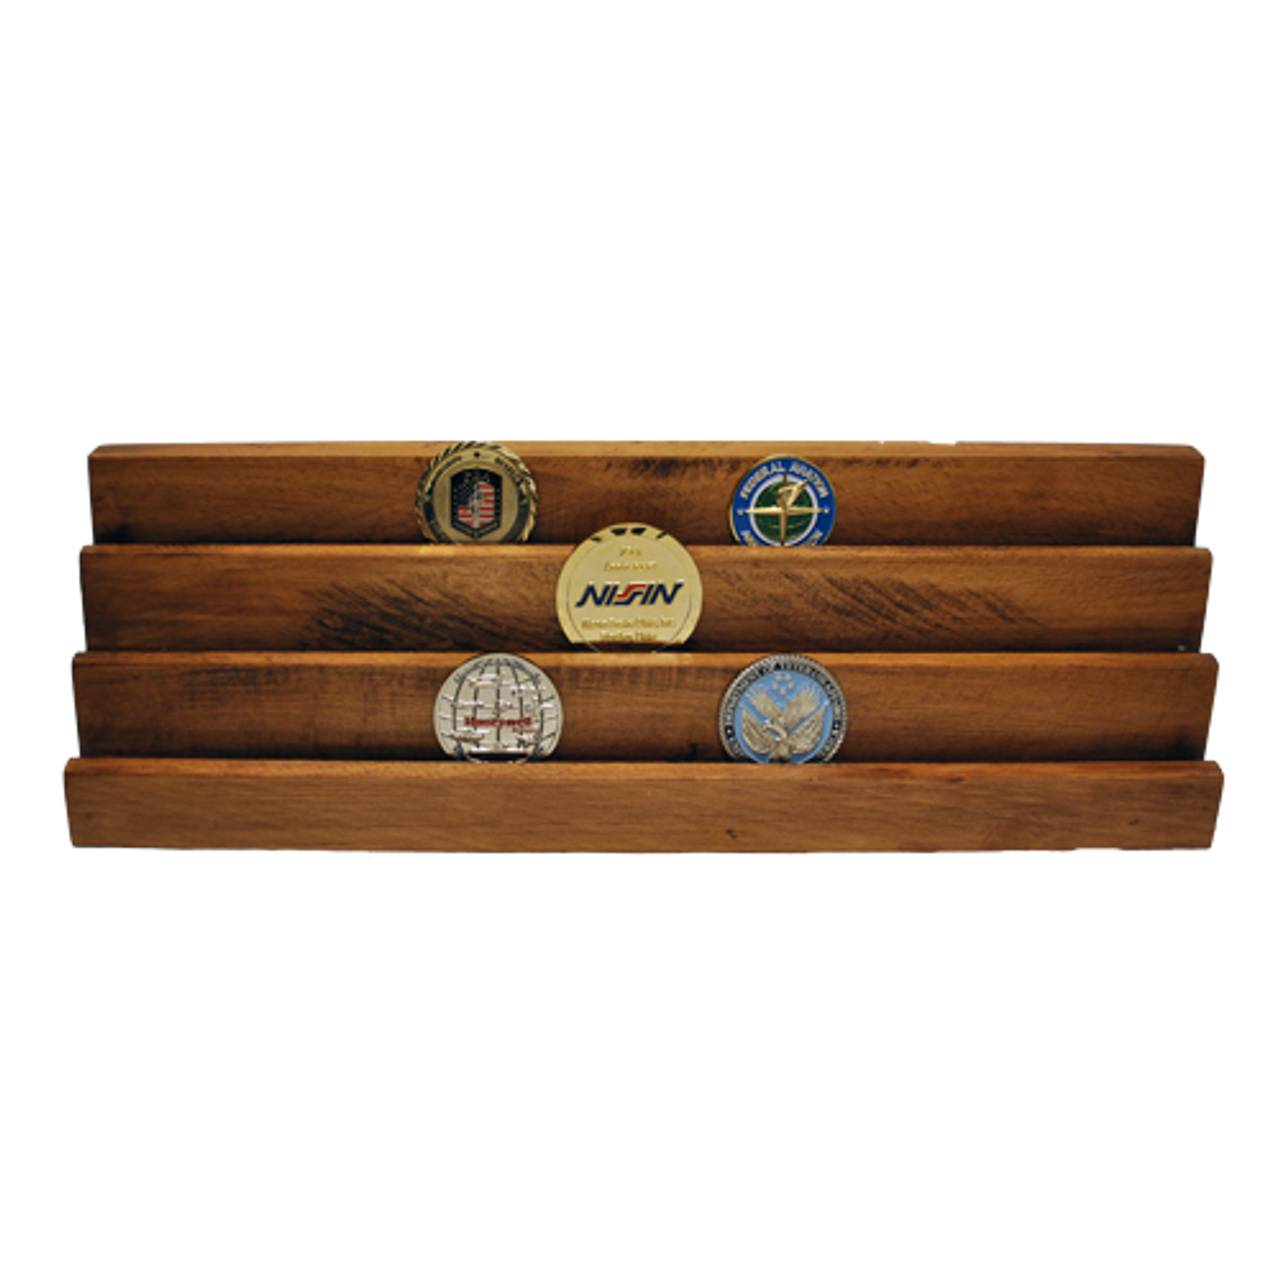 Wooden Challenge Coin Display Stand 3 Vertical Rows